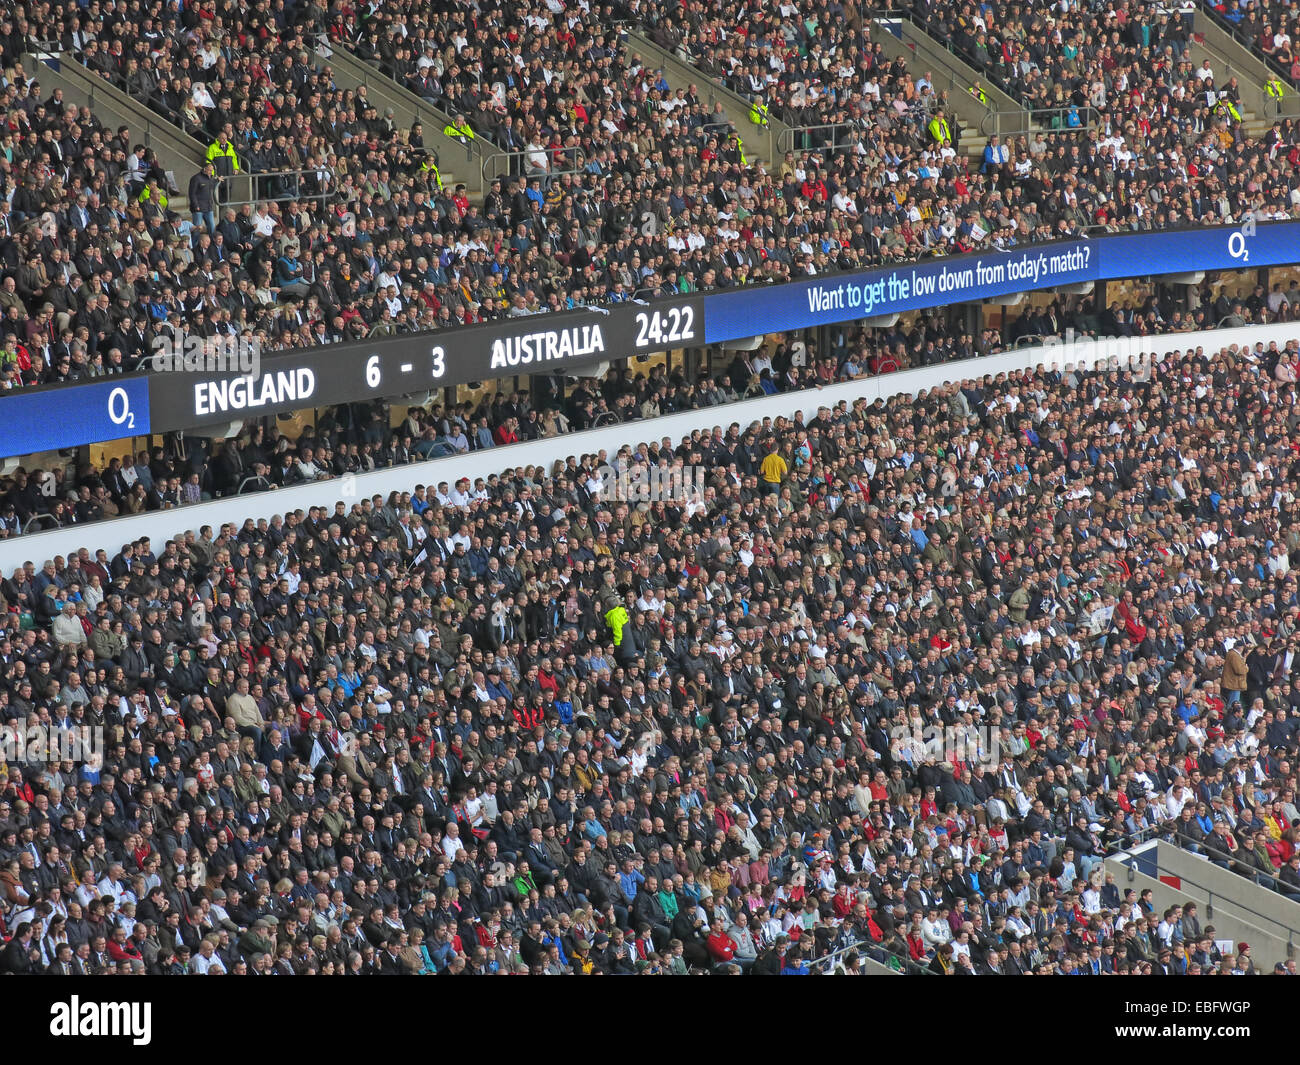 Crowds in stand English Rugby at Twickenham, London, England, UK - Stock Image